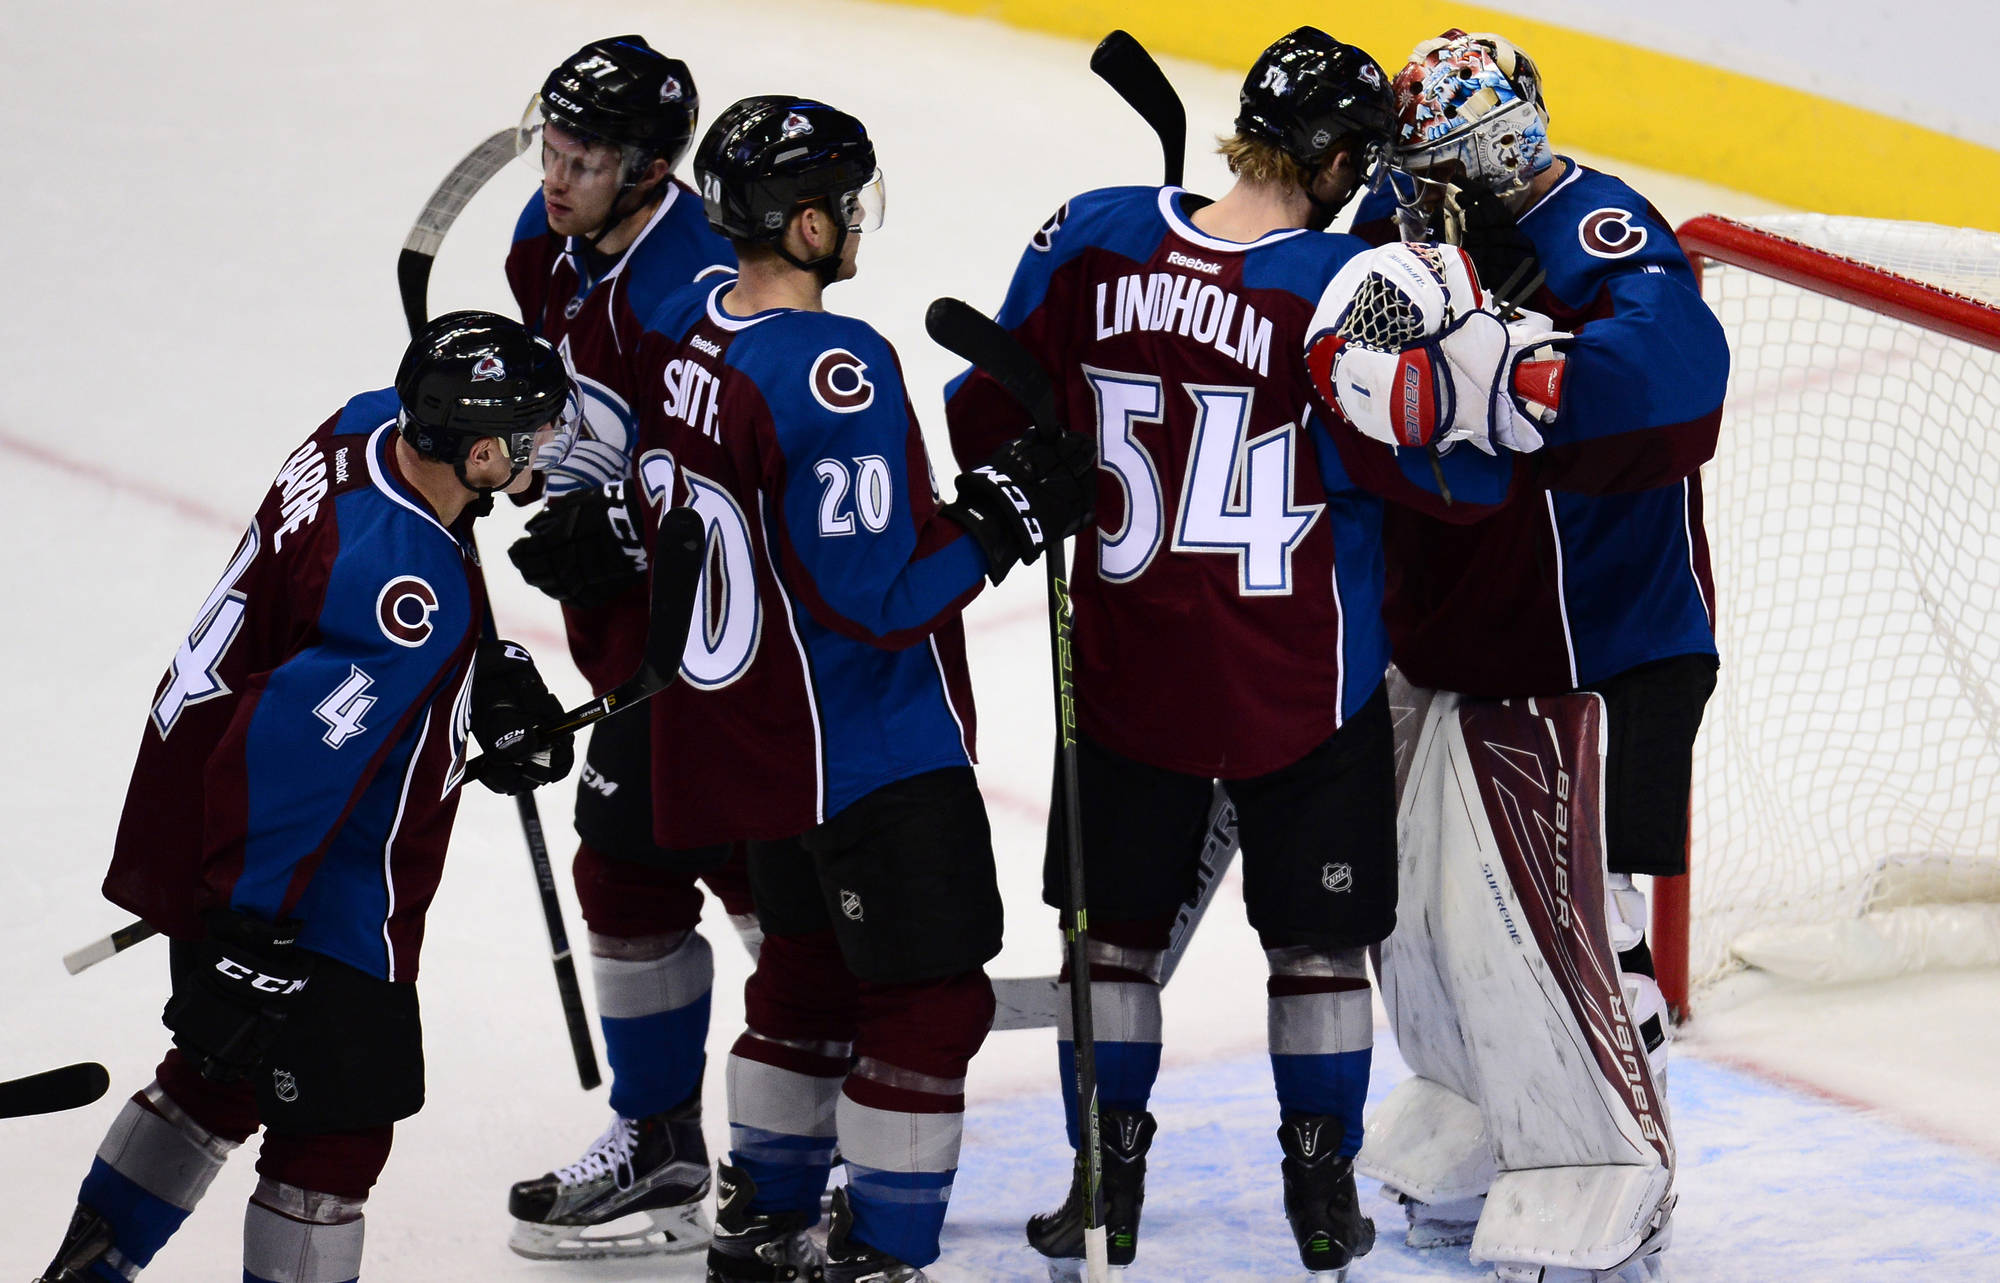 The Next Era: Preview of The 2016 Colorado Avalanche